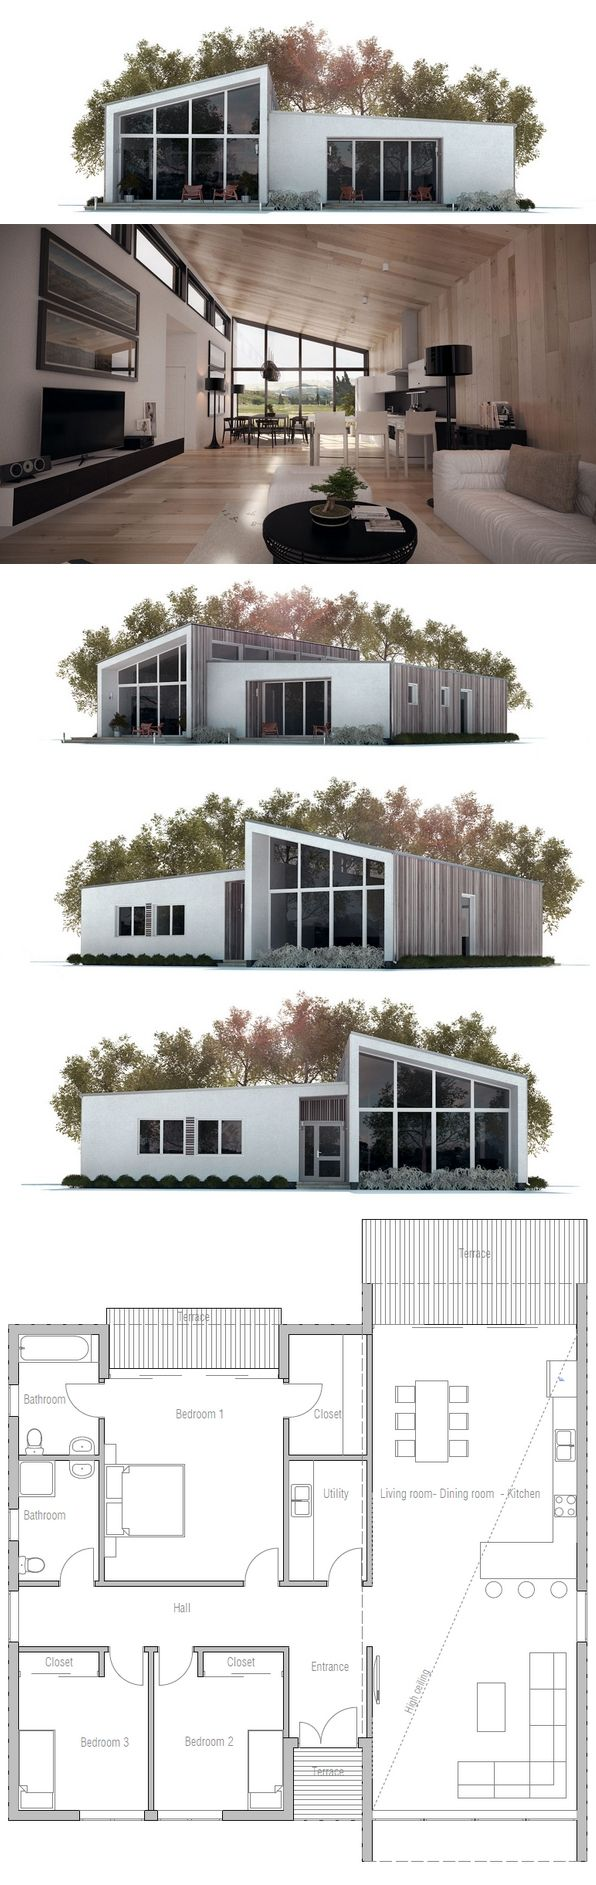 Eliminate two front bedrooms to constrict sq ft small house plan